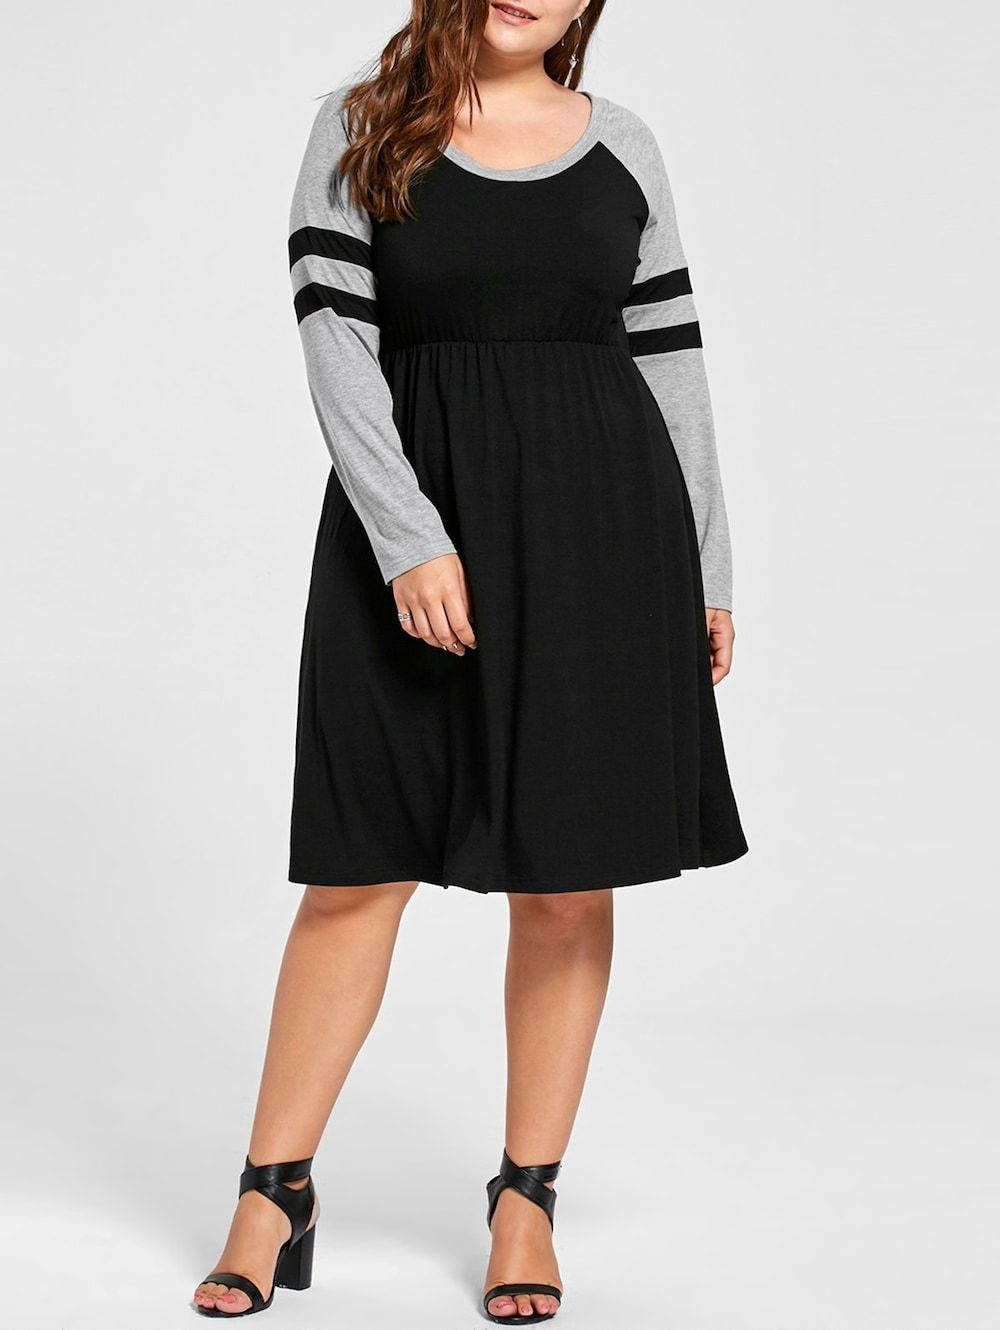 Tee Shirt Plus Size Formal Dresses with Sleeves